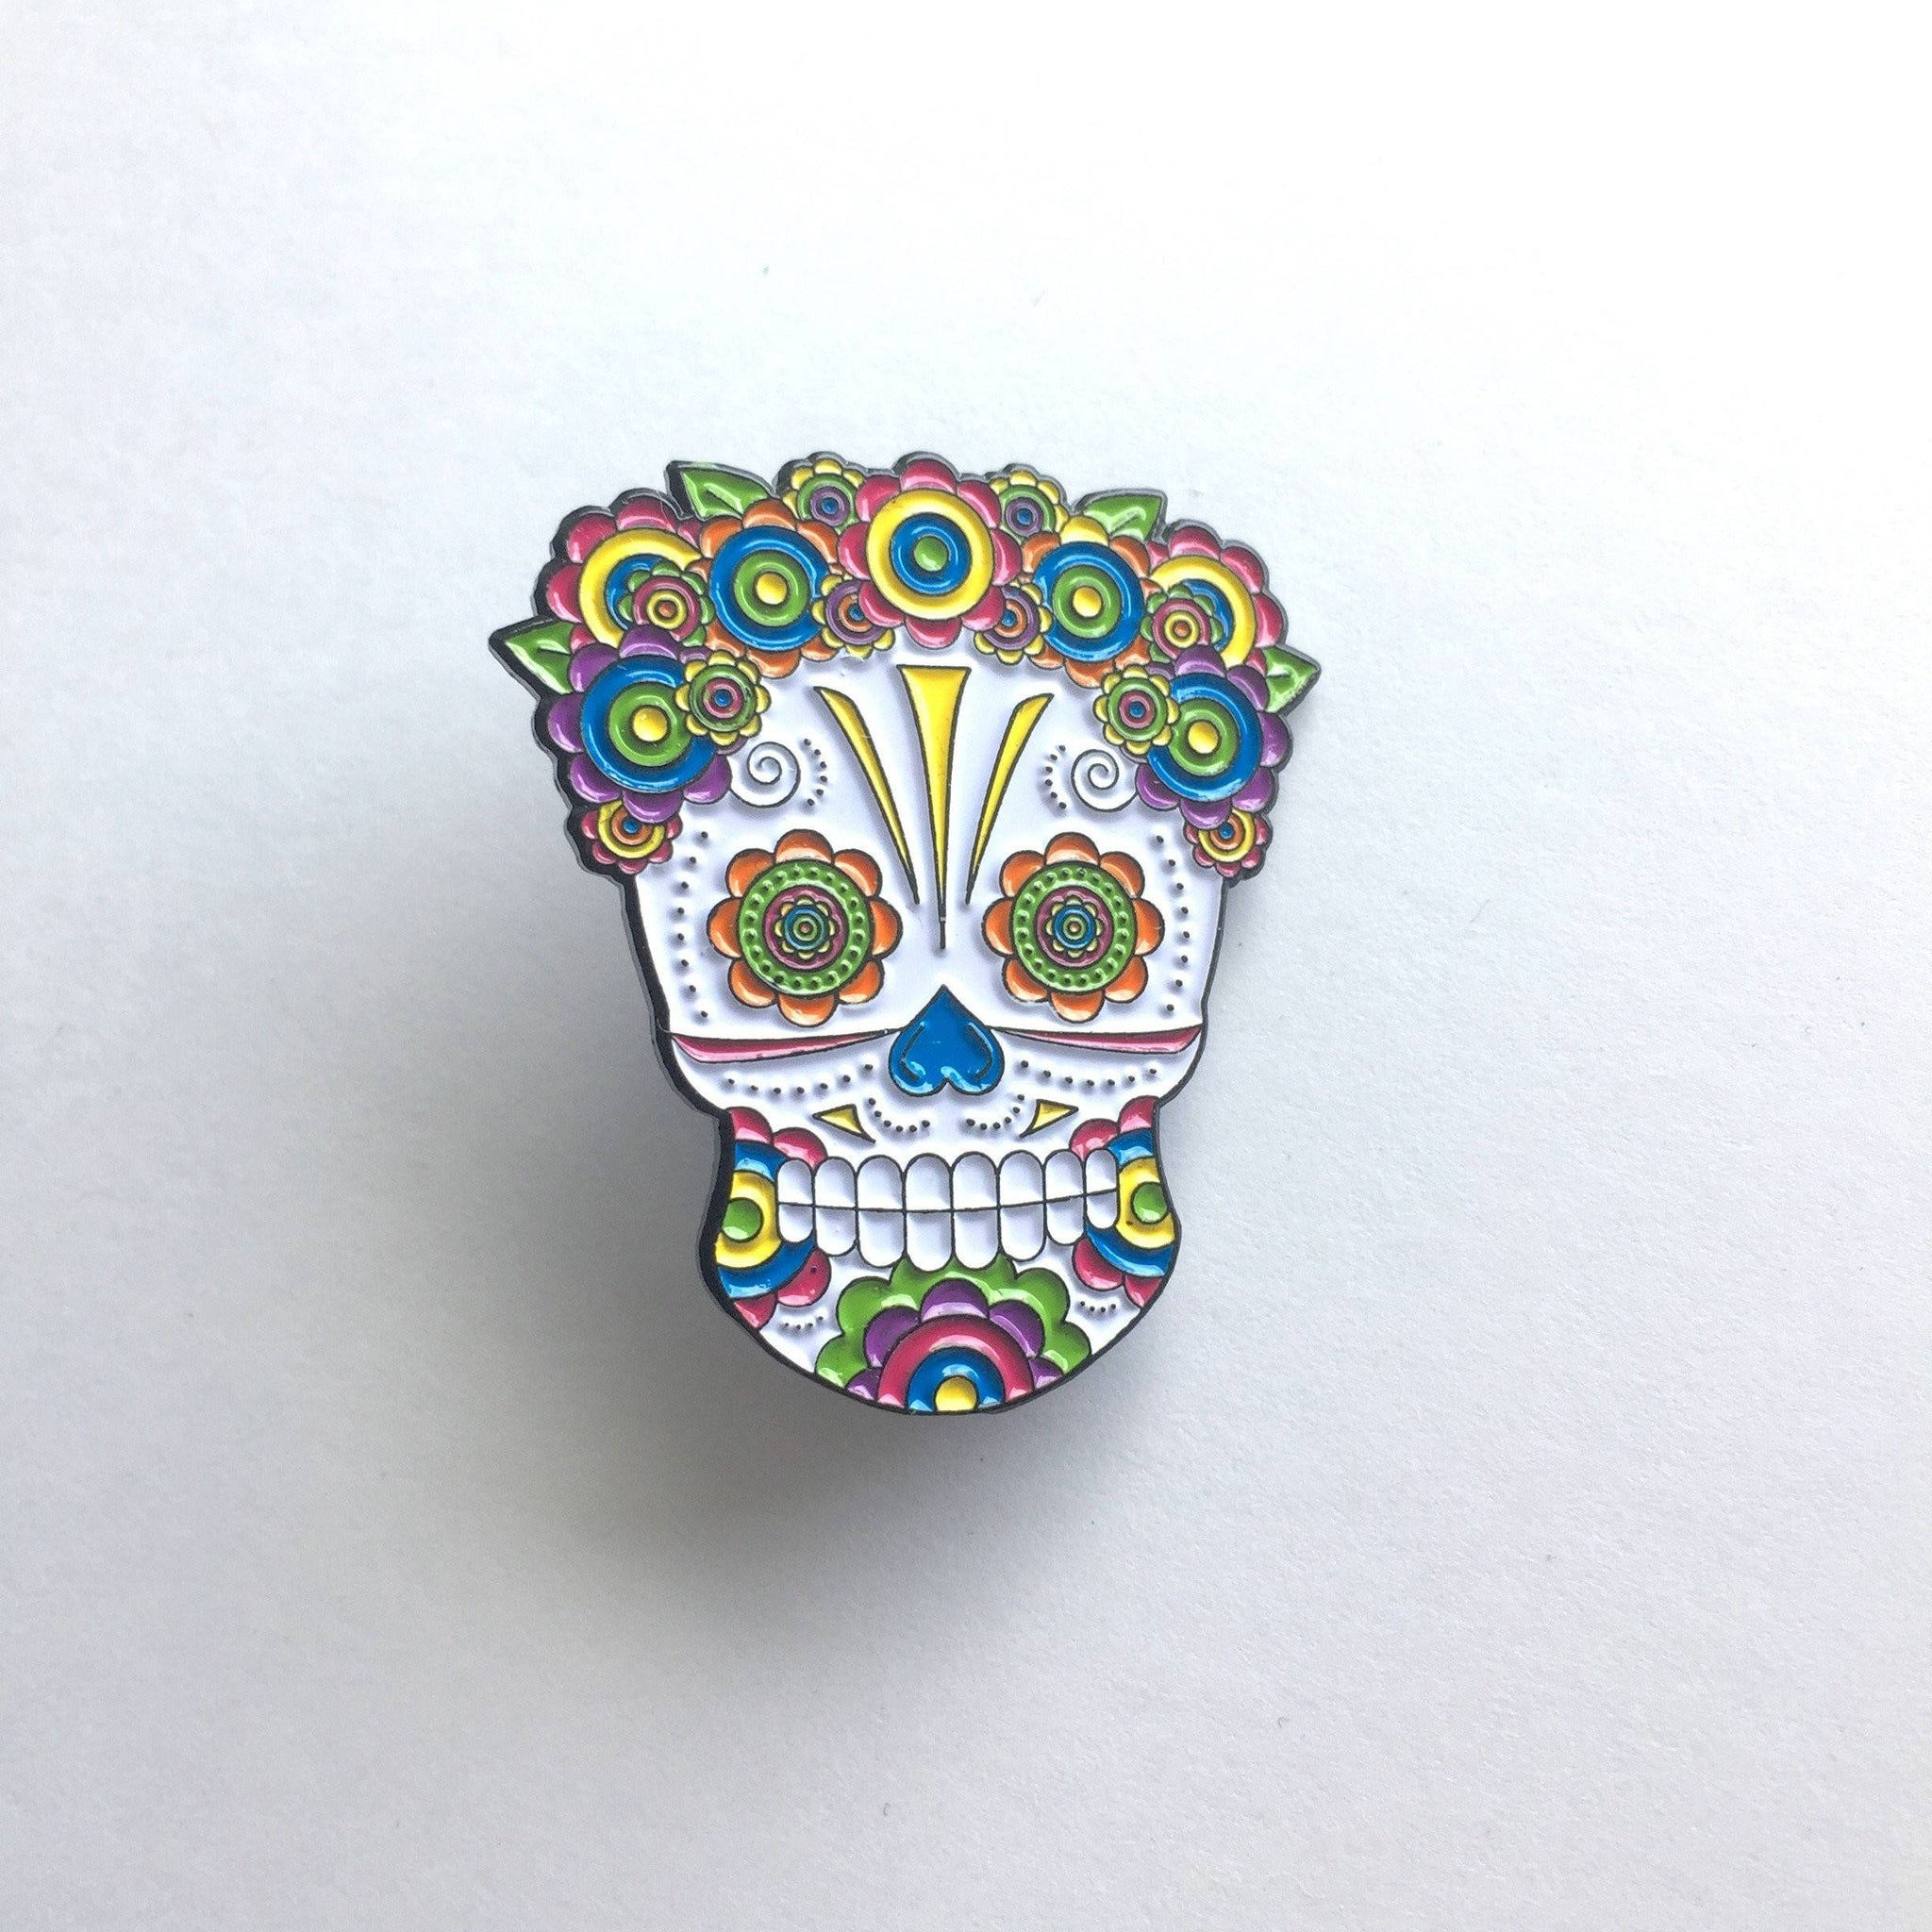 Lady Sugar Skull Soft Enamel Pin 1.50""